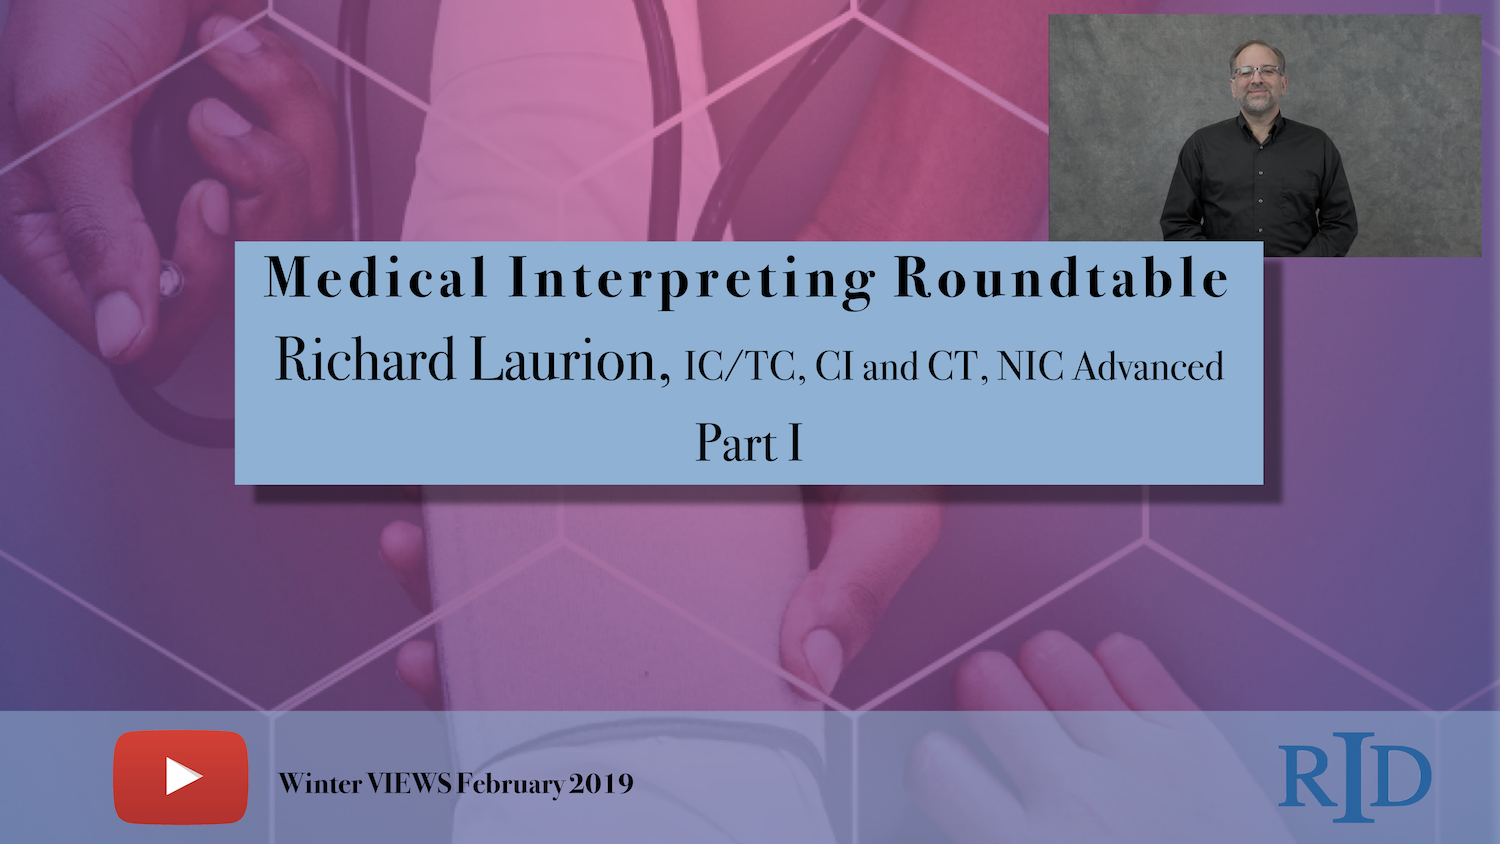 Medical Interpreting Roundtable Part 1